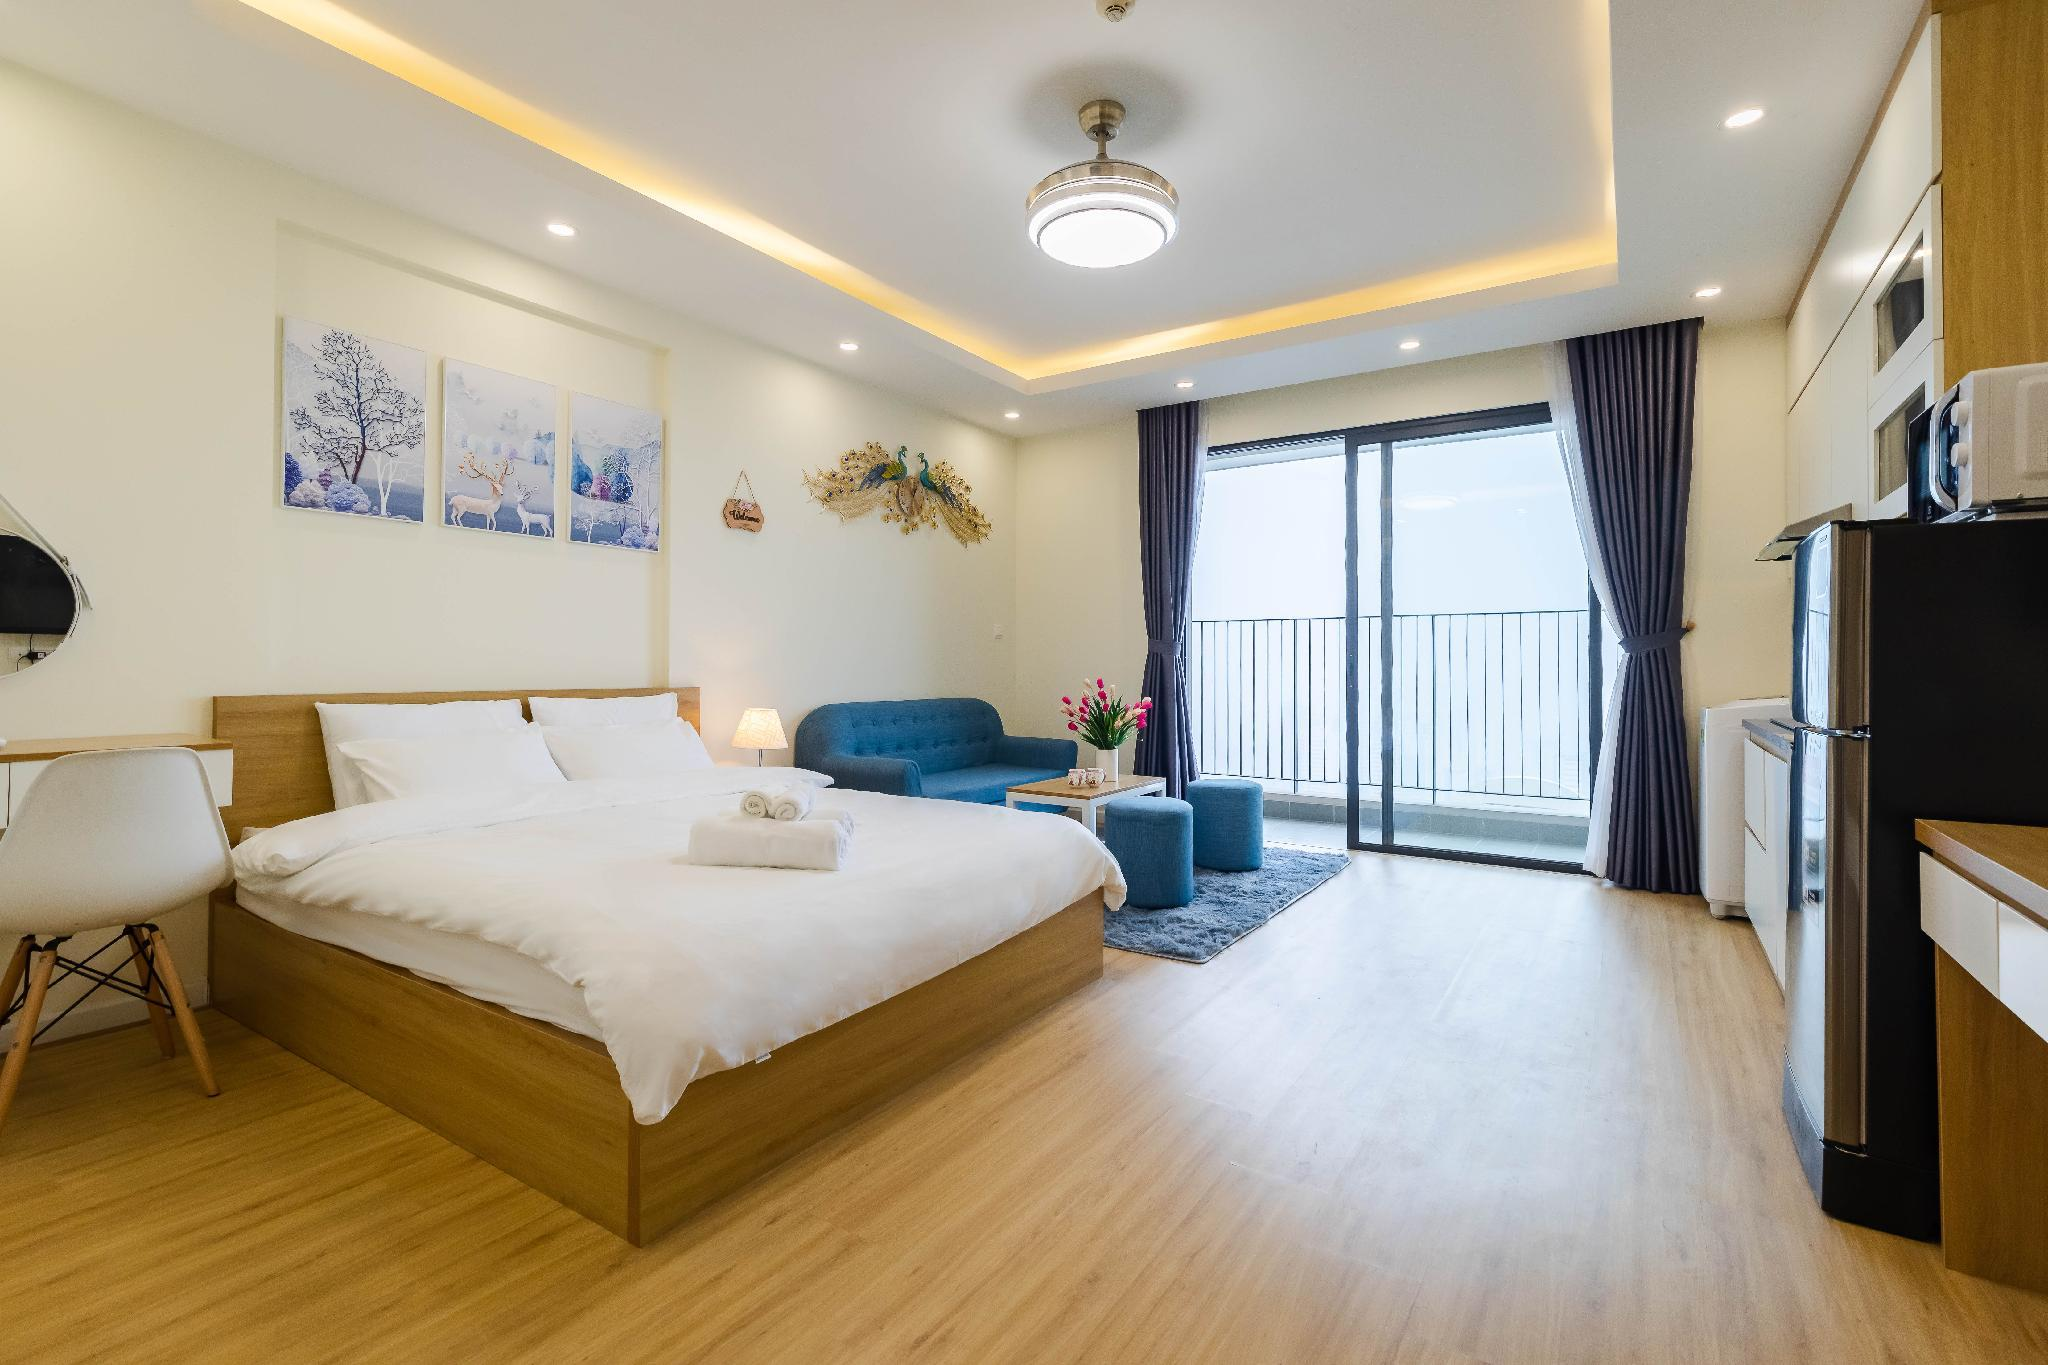 A Homes D'Capitale Luxury Apartment 1.3